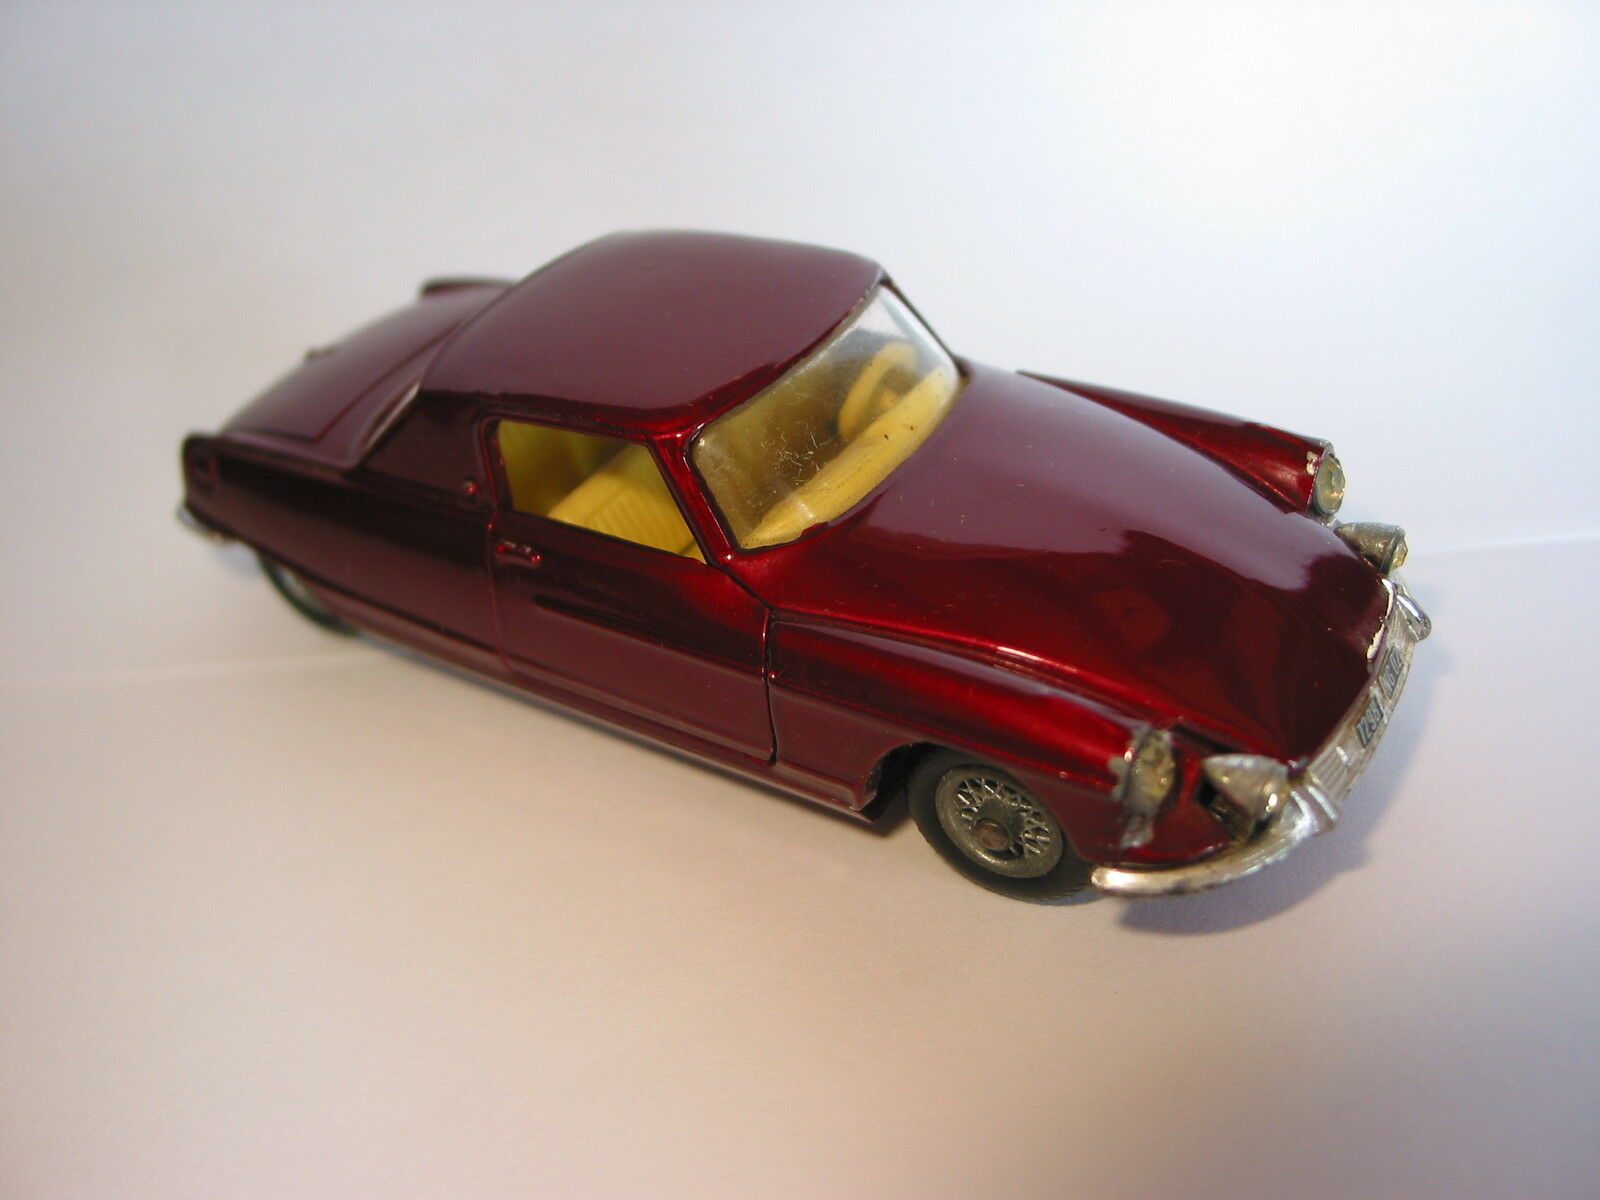 CORGI TOYS CITROEN DS CHASSIS HENRI CHAPRON BODY LE DANDY COUPE SCALE 1 43